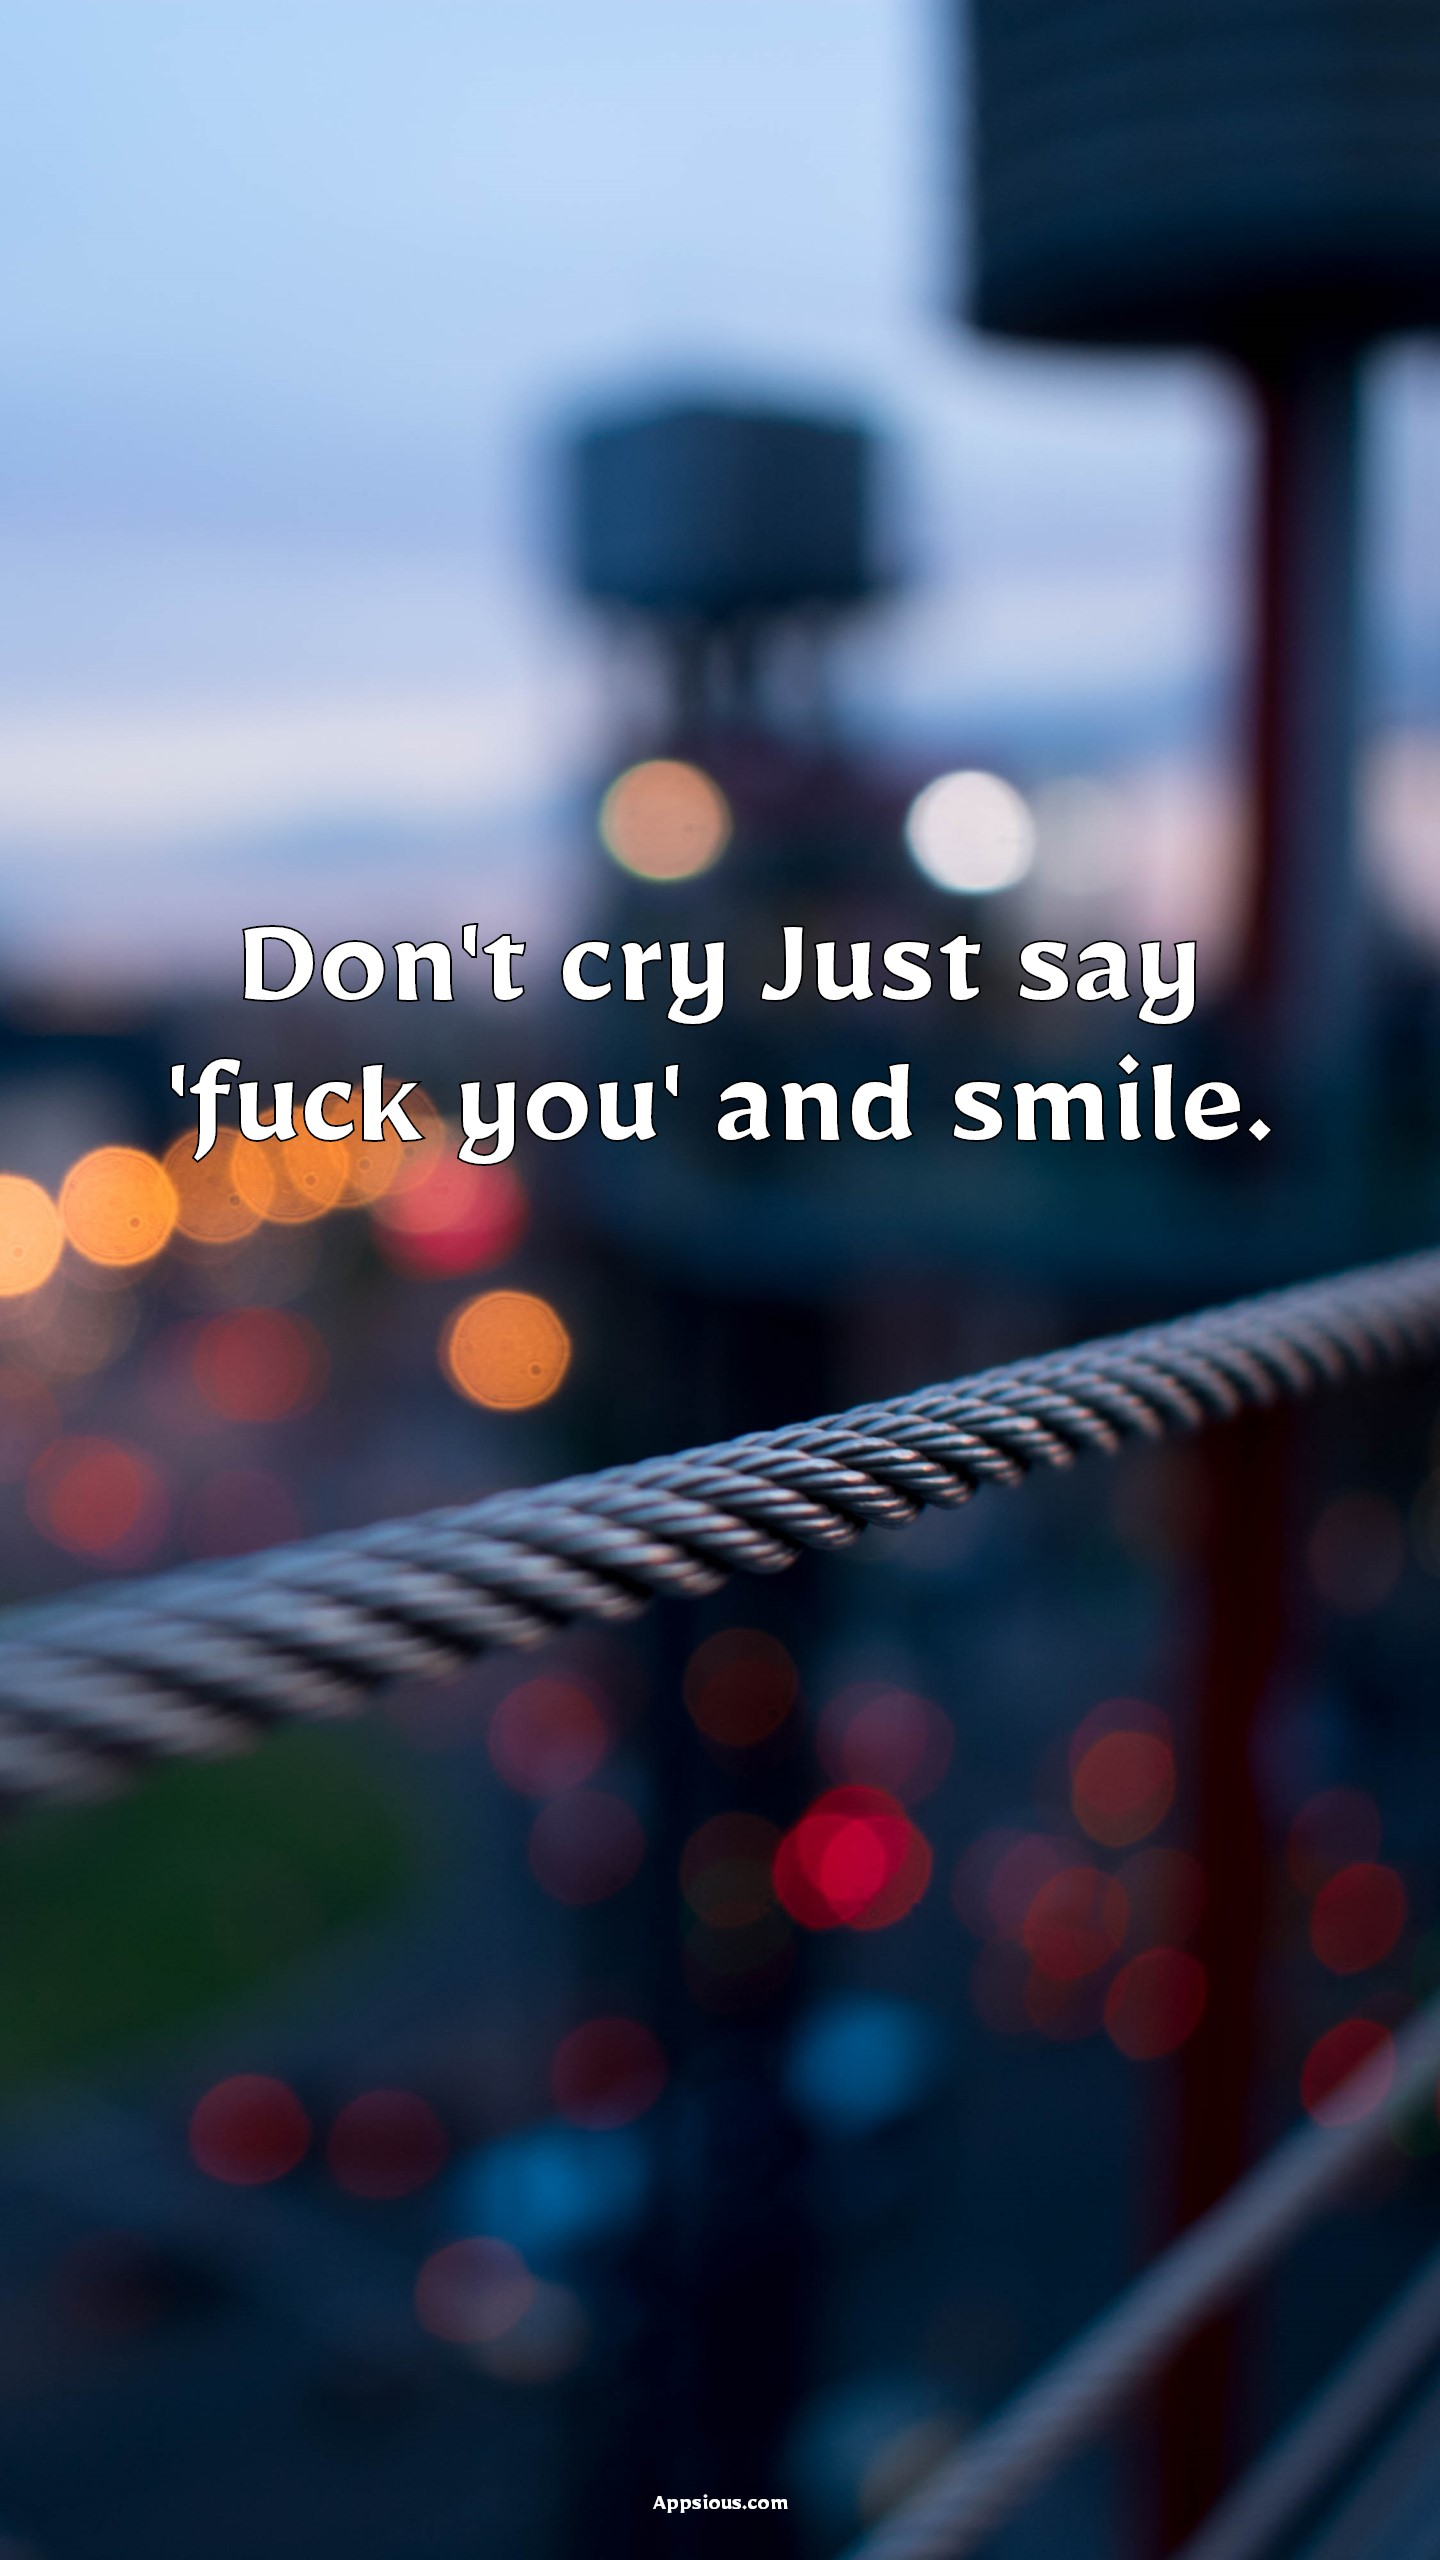 Don't cry Just say 'fuck you' and smile.